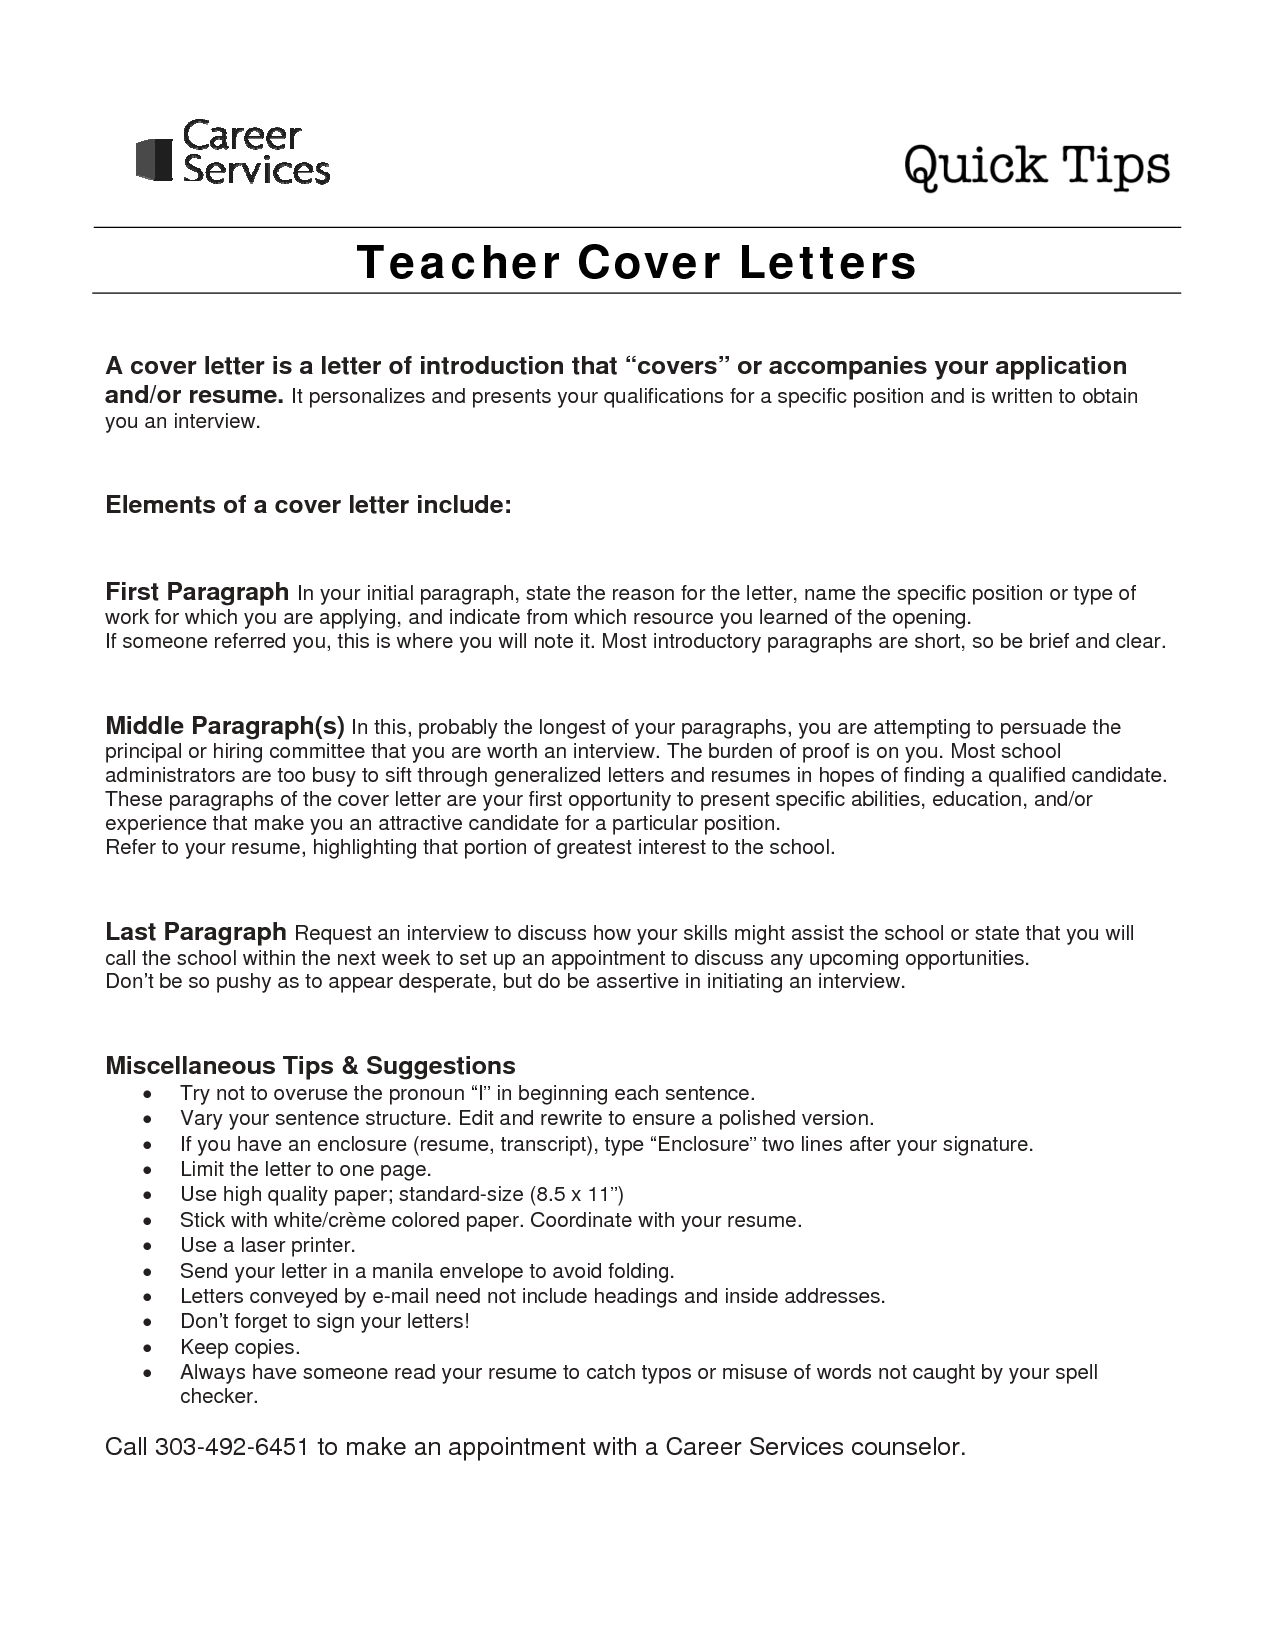 Cover letter so you leaves impression httpresumesdesign letter samples cover mistakes faq about builder teachers resume template for sample inside teaching best free home design idea inspiration spiritdancerdesigns